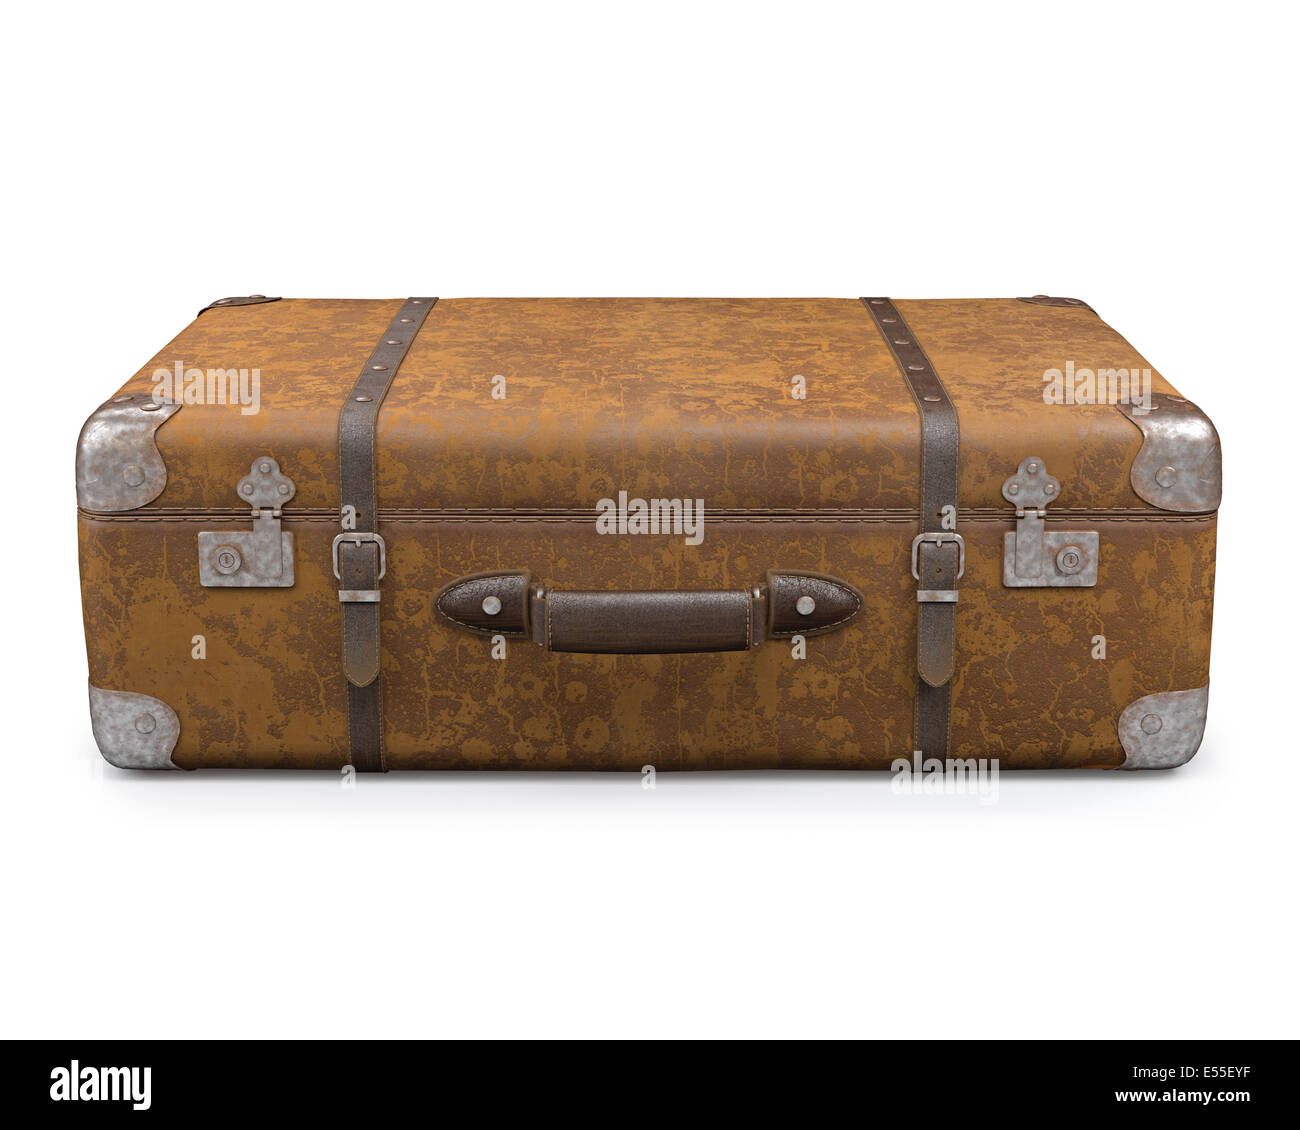 old suitcase with wear on the surface of the leather and rust on